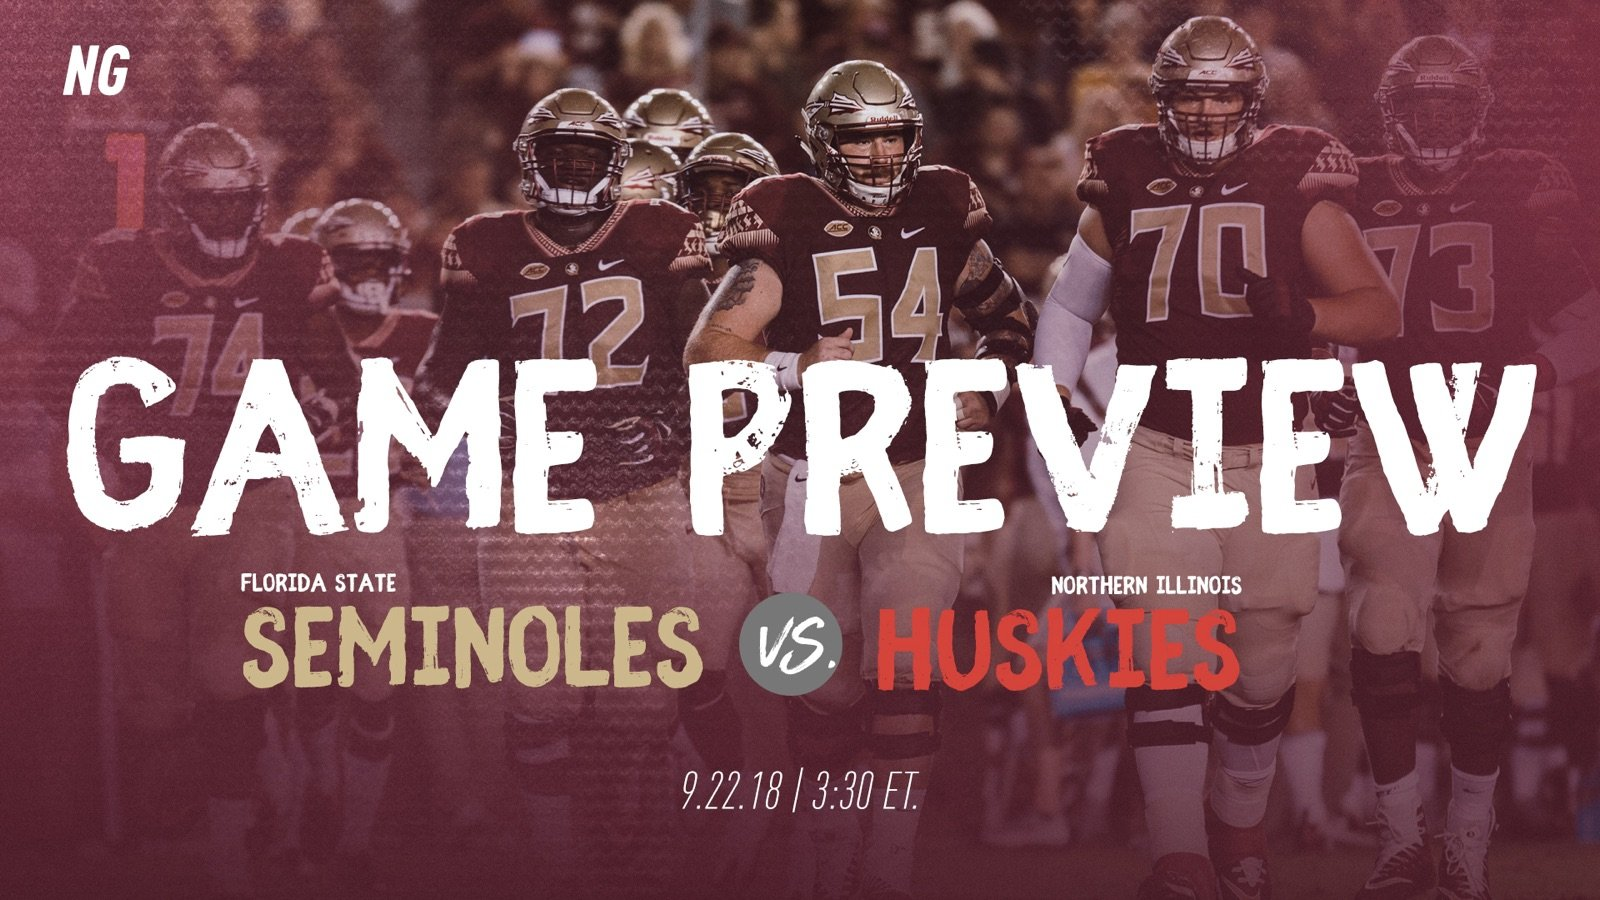 Florida State vs Northern Illinois Game Preview  NoleGameday